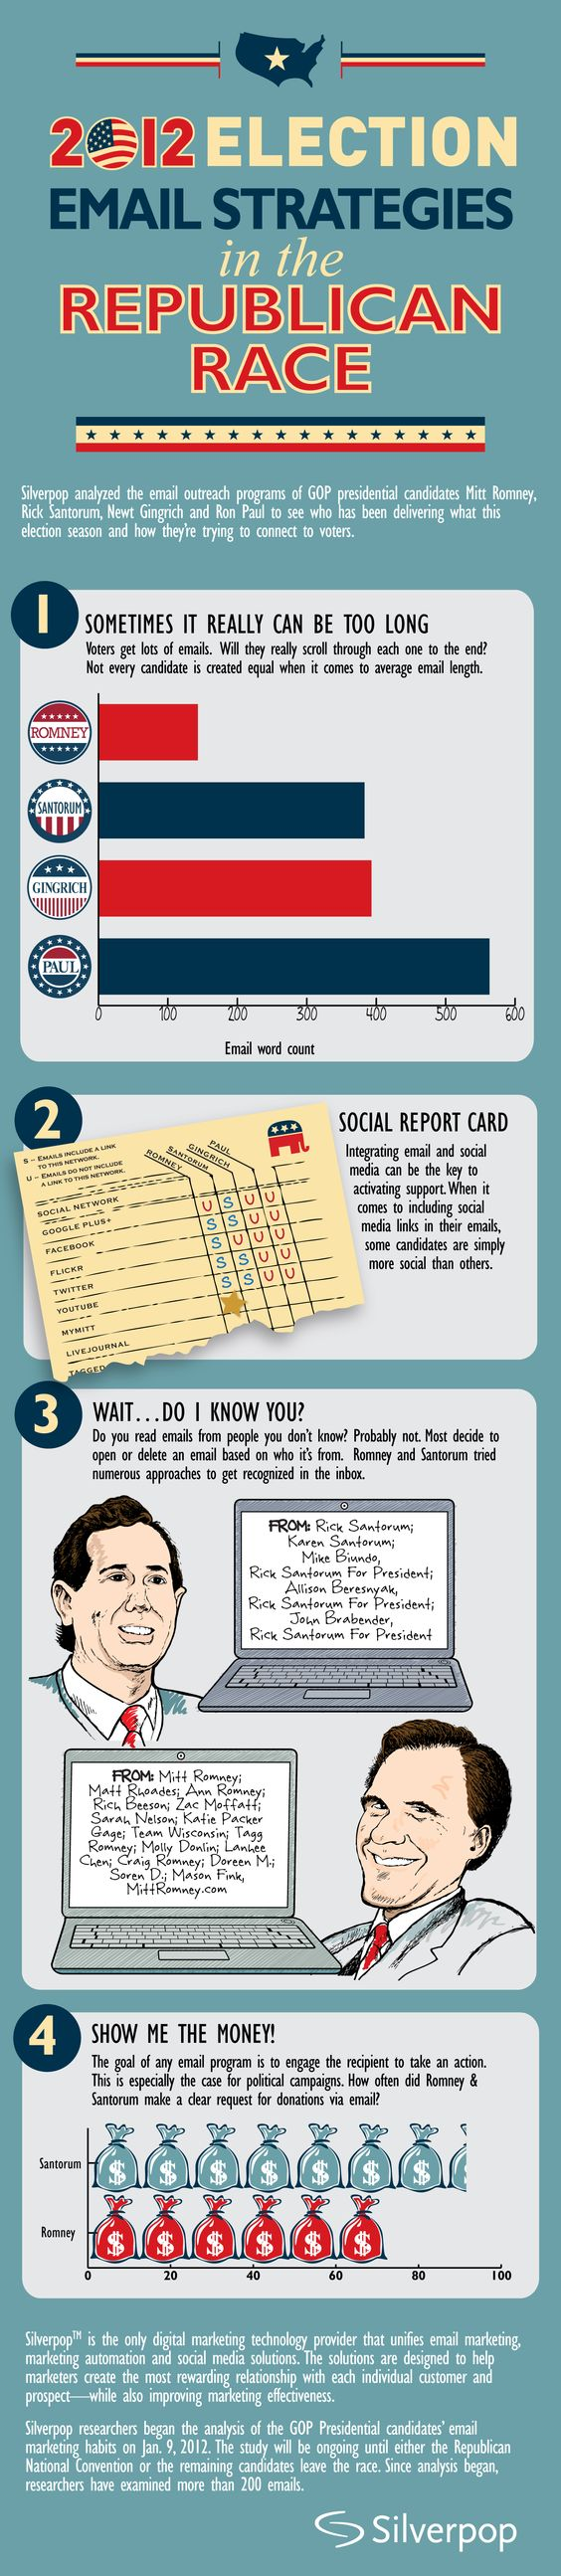 #infographic * 2012 ELECTION EMAIL STRATEGIES IN THE REPUBLICAN RACE * Romney | Santorum | Gingrich | Paul | Gplus | Facebook | Flickr | Twitter | MyMitt |